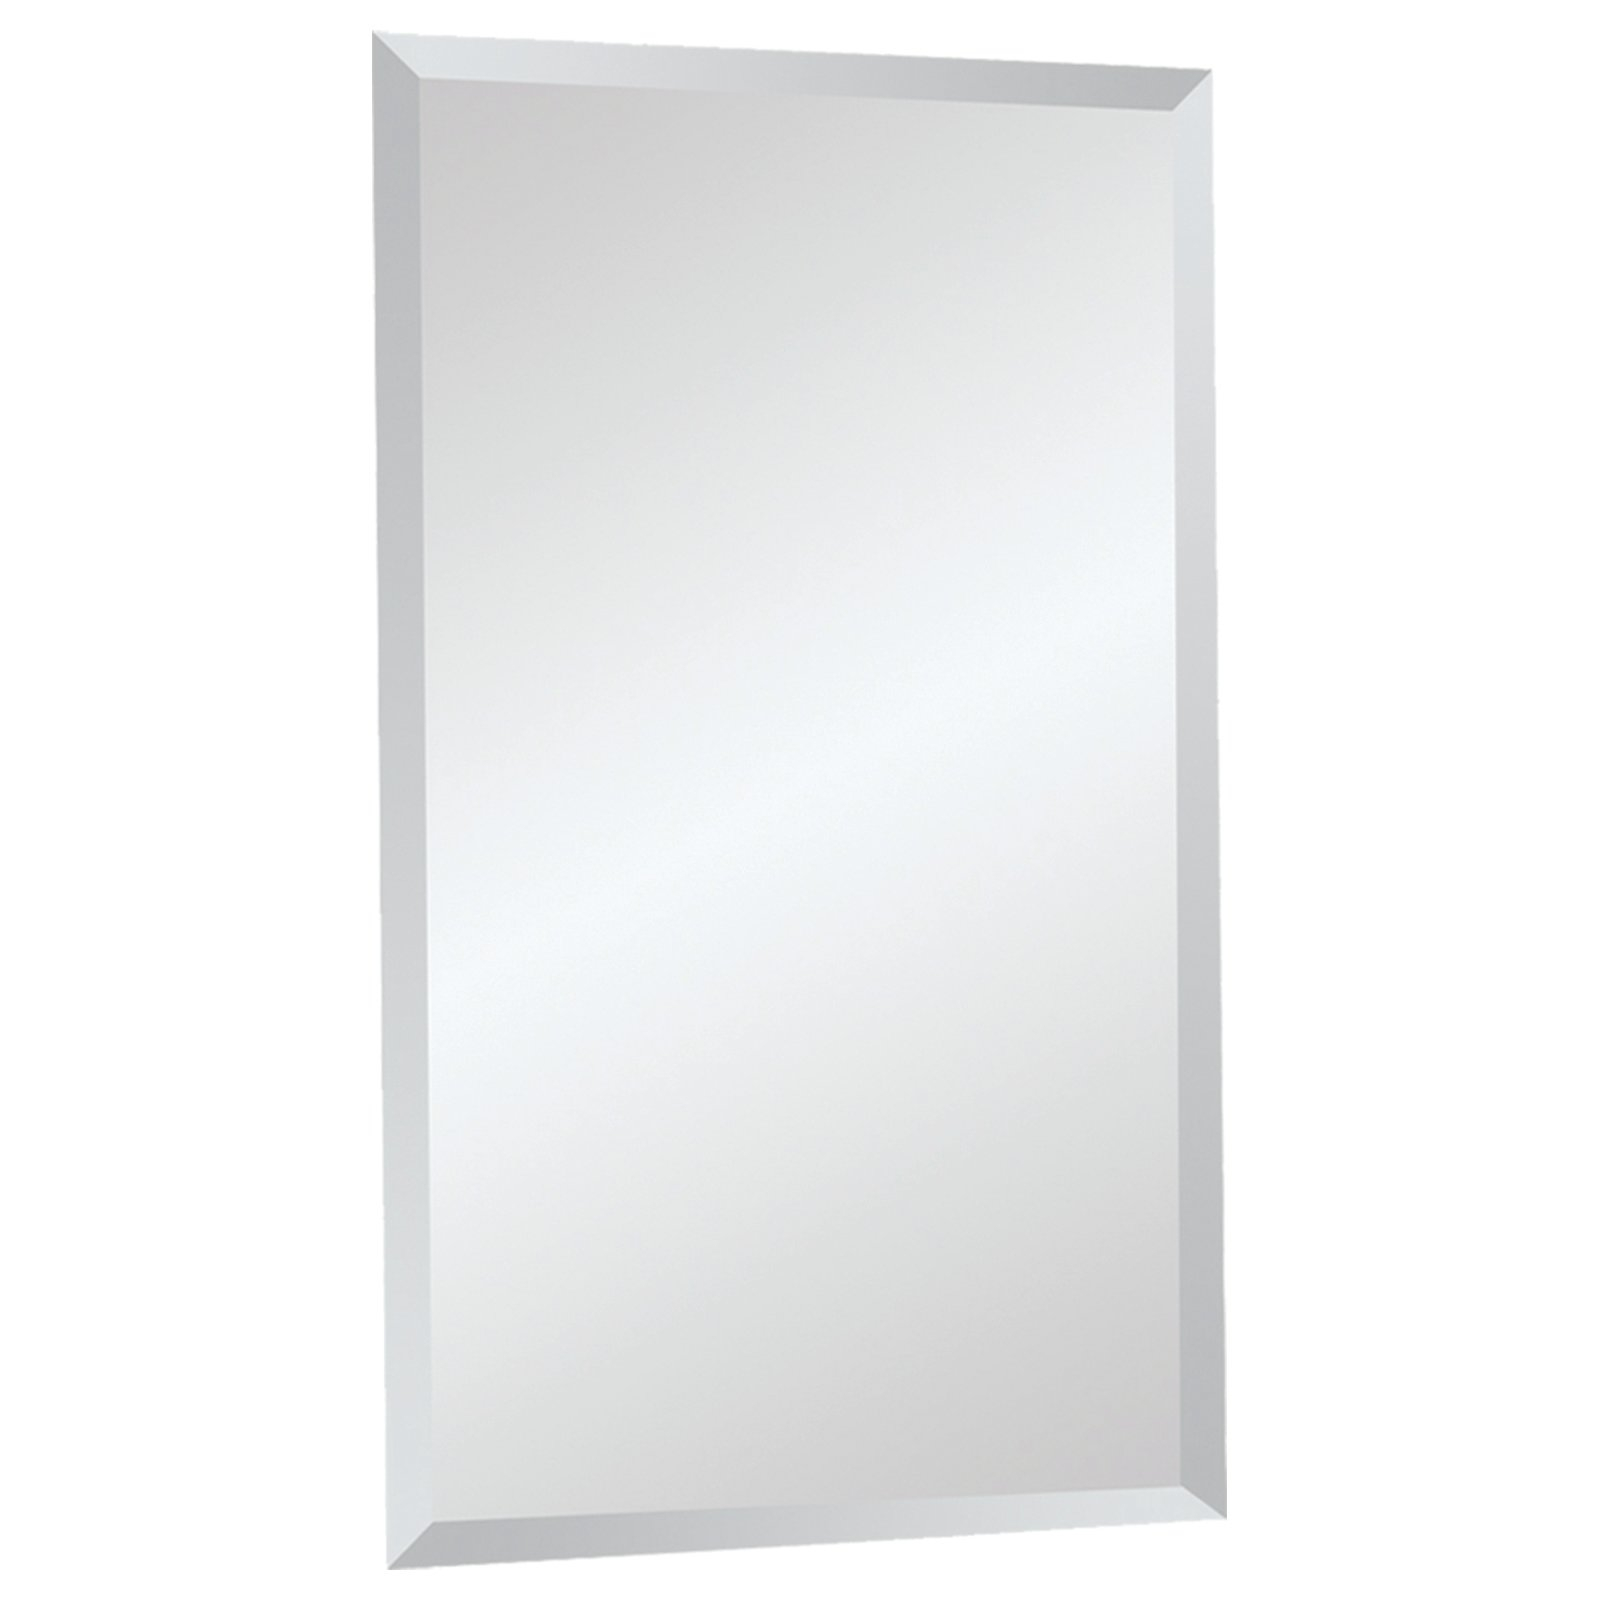 Frameless Mirrors Youll Love Wayfair Regarding Slim Wall Mirror (Image 3 of 15)